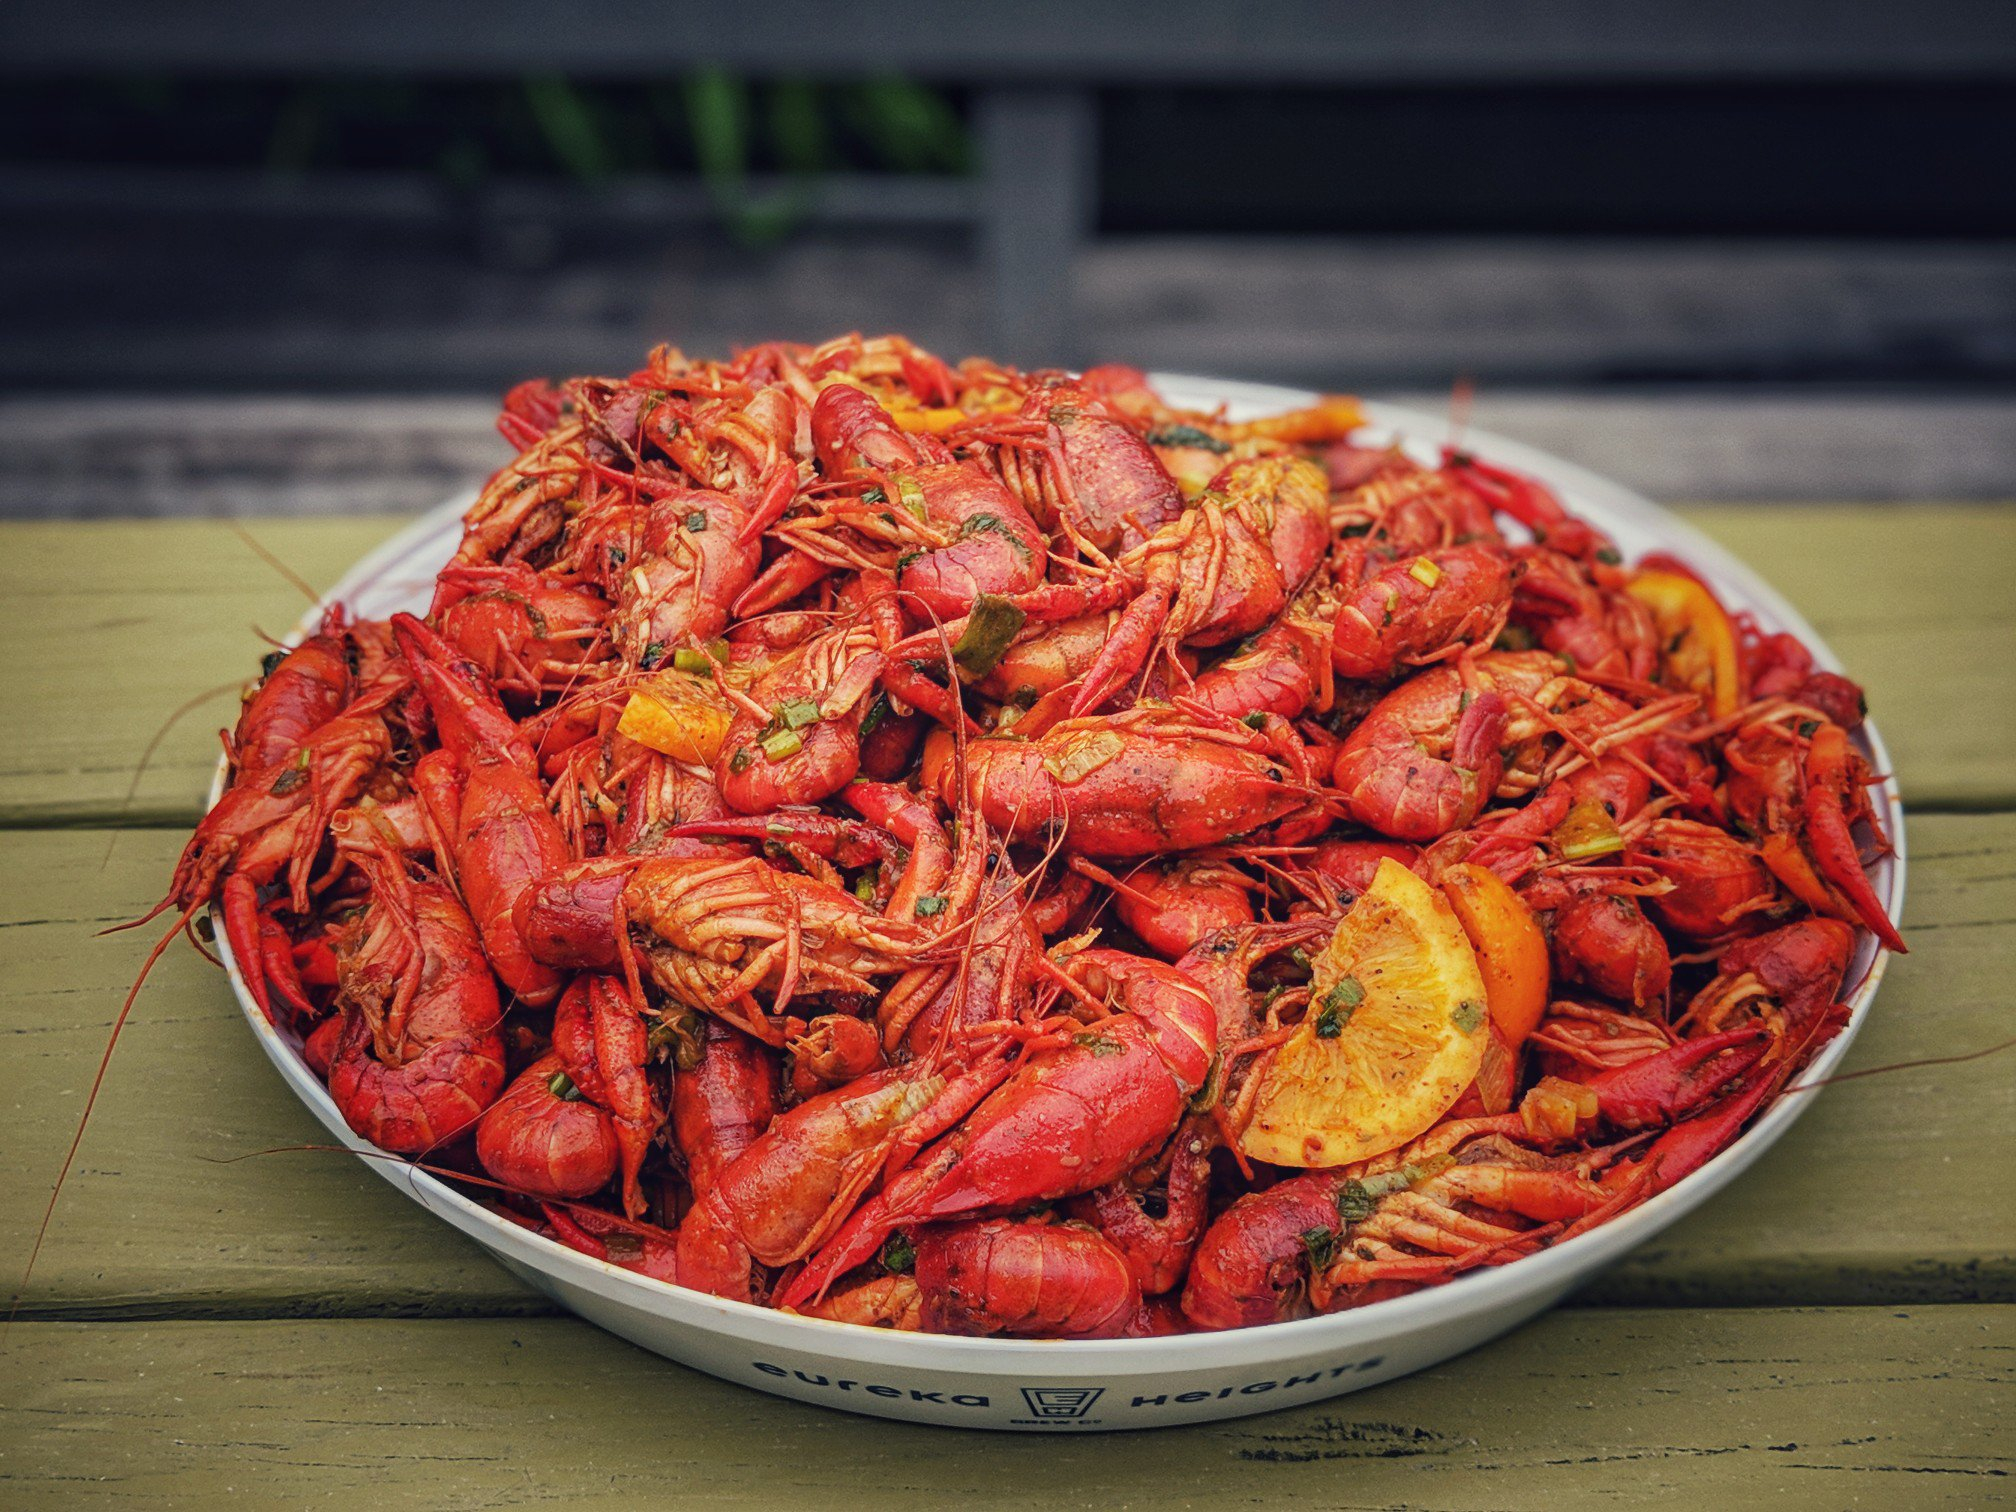 Large round platter of cooked crawfish.